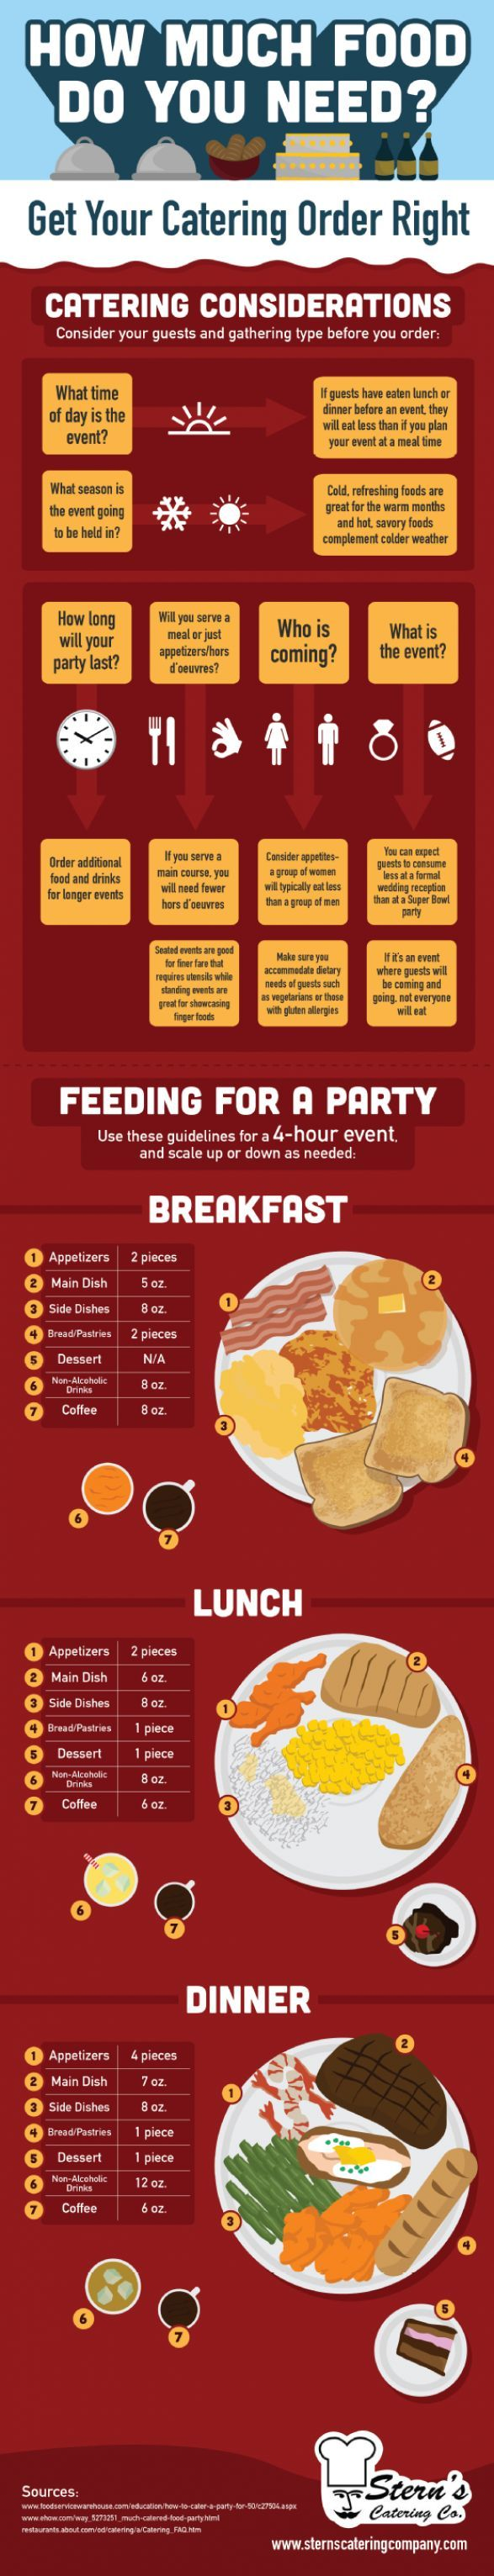 Hosting a big event? Use this handy guide to determine exactly how much food you'll need to serve your guests